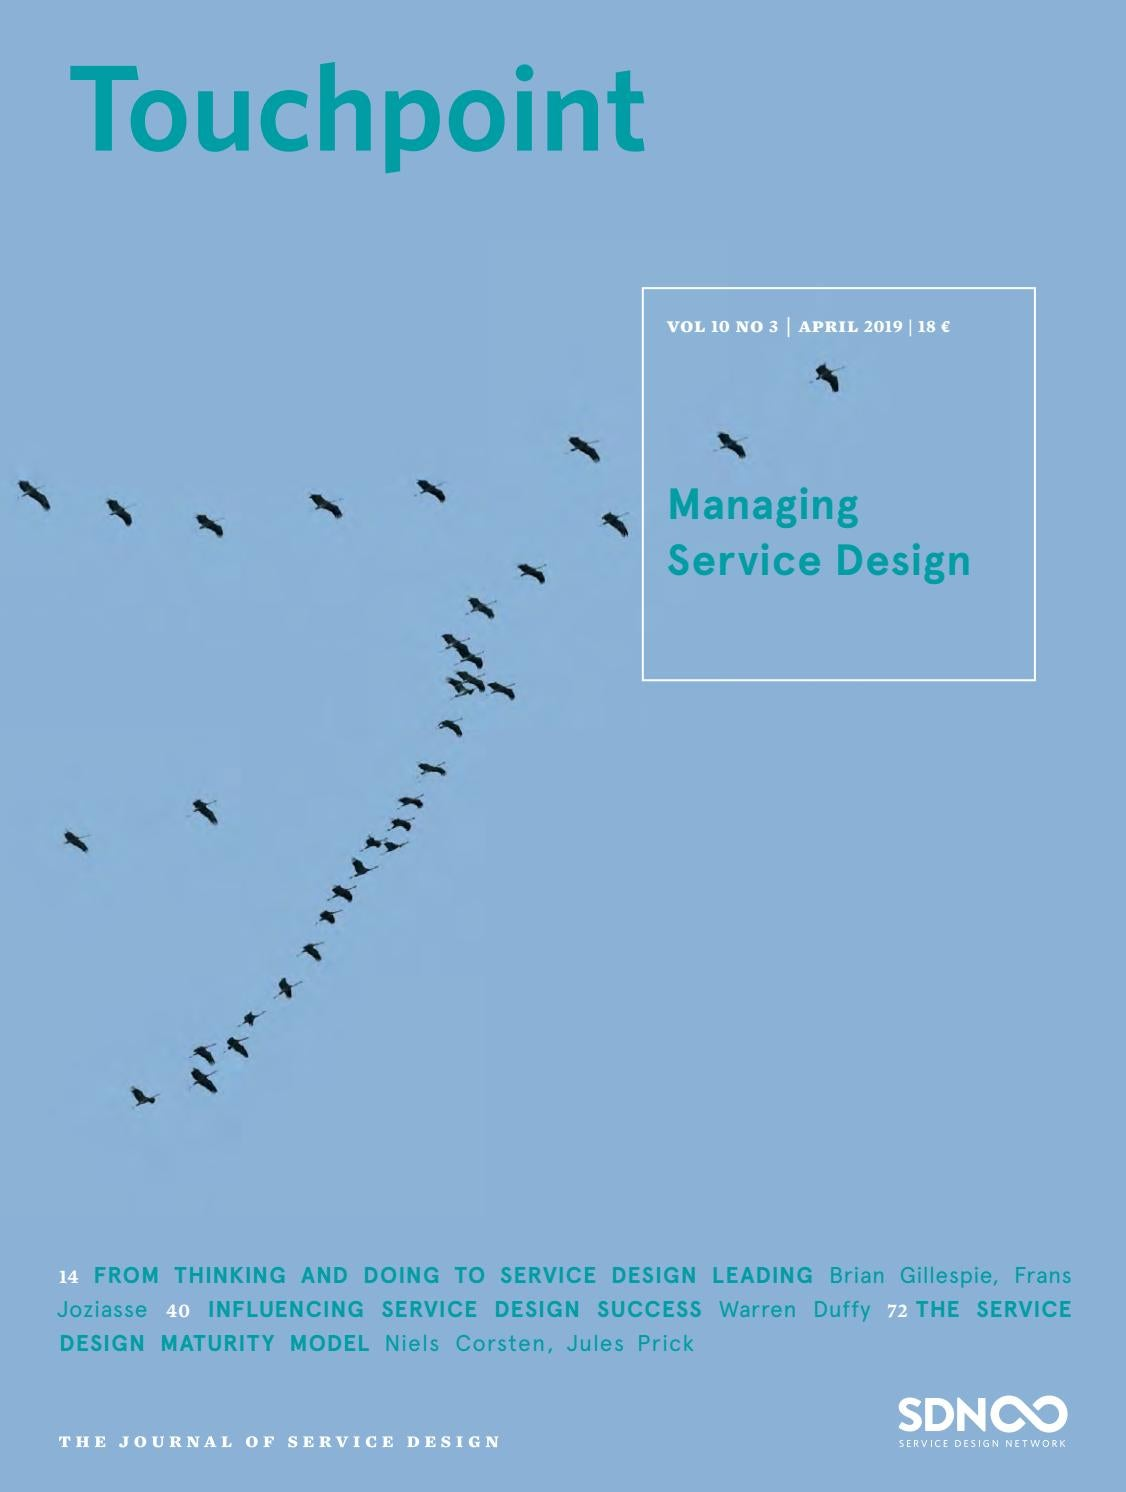 Touchpoint Vol 10 No 3 Managing Service Design By Service Design Network Issuu